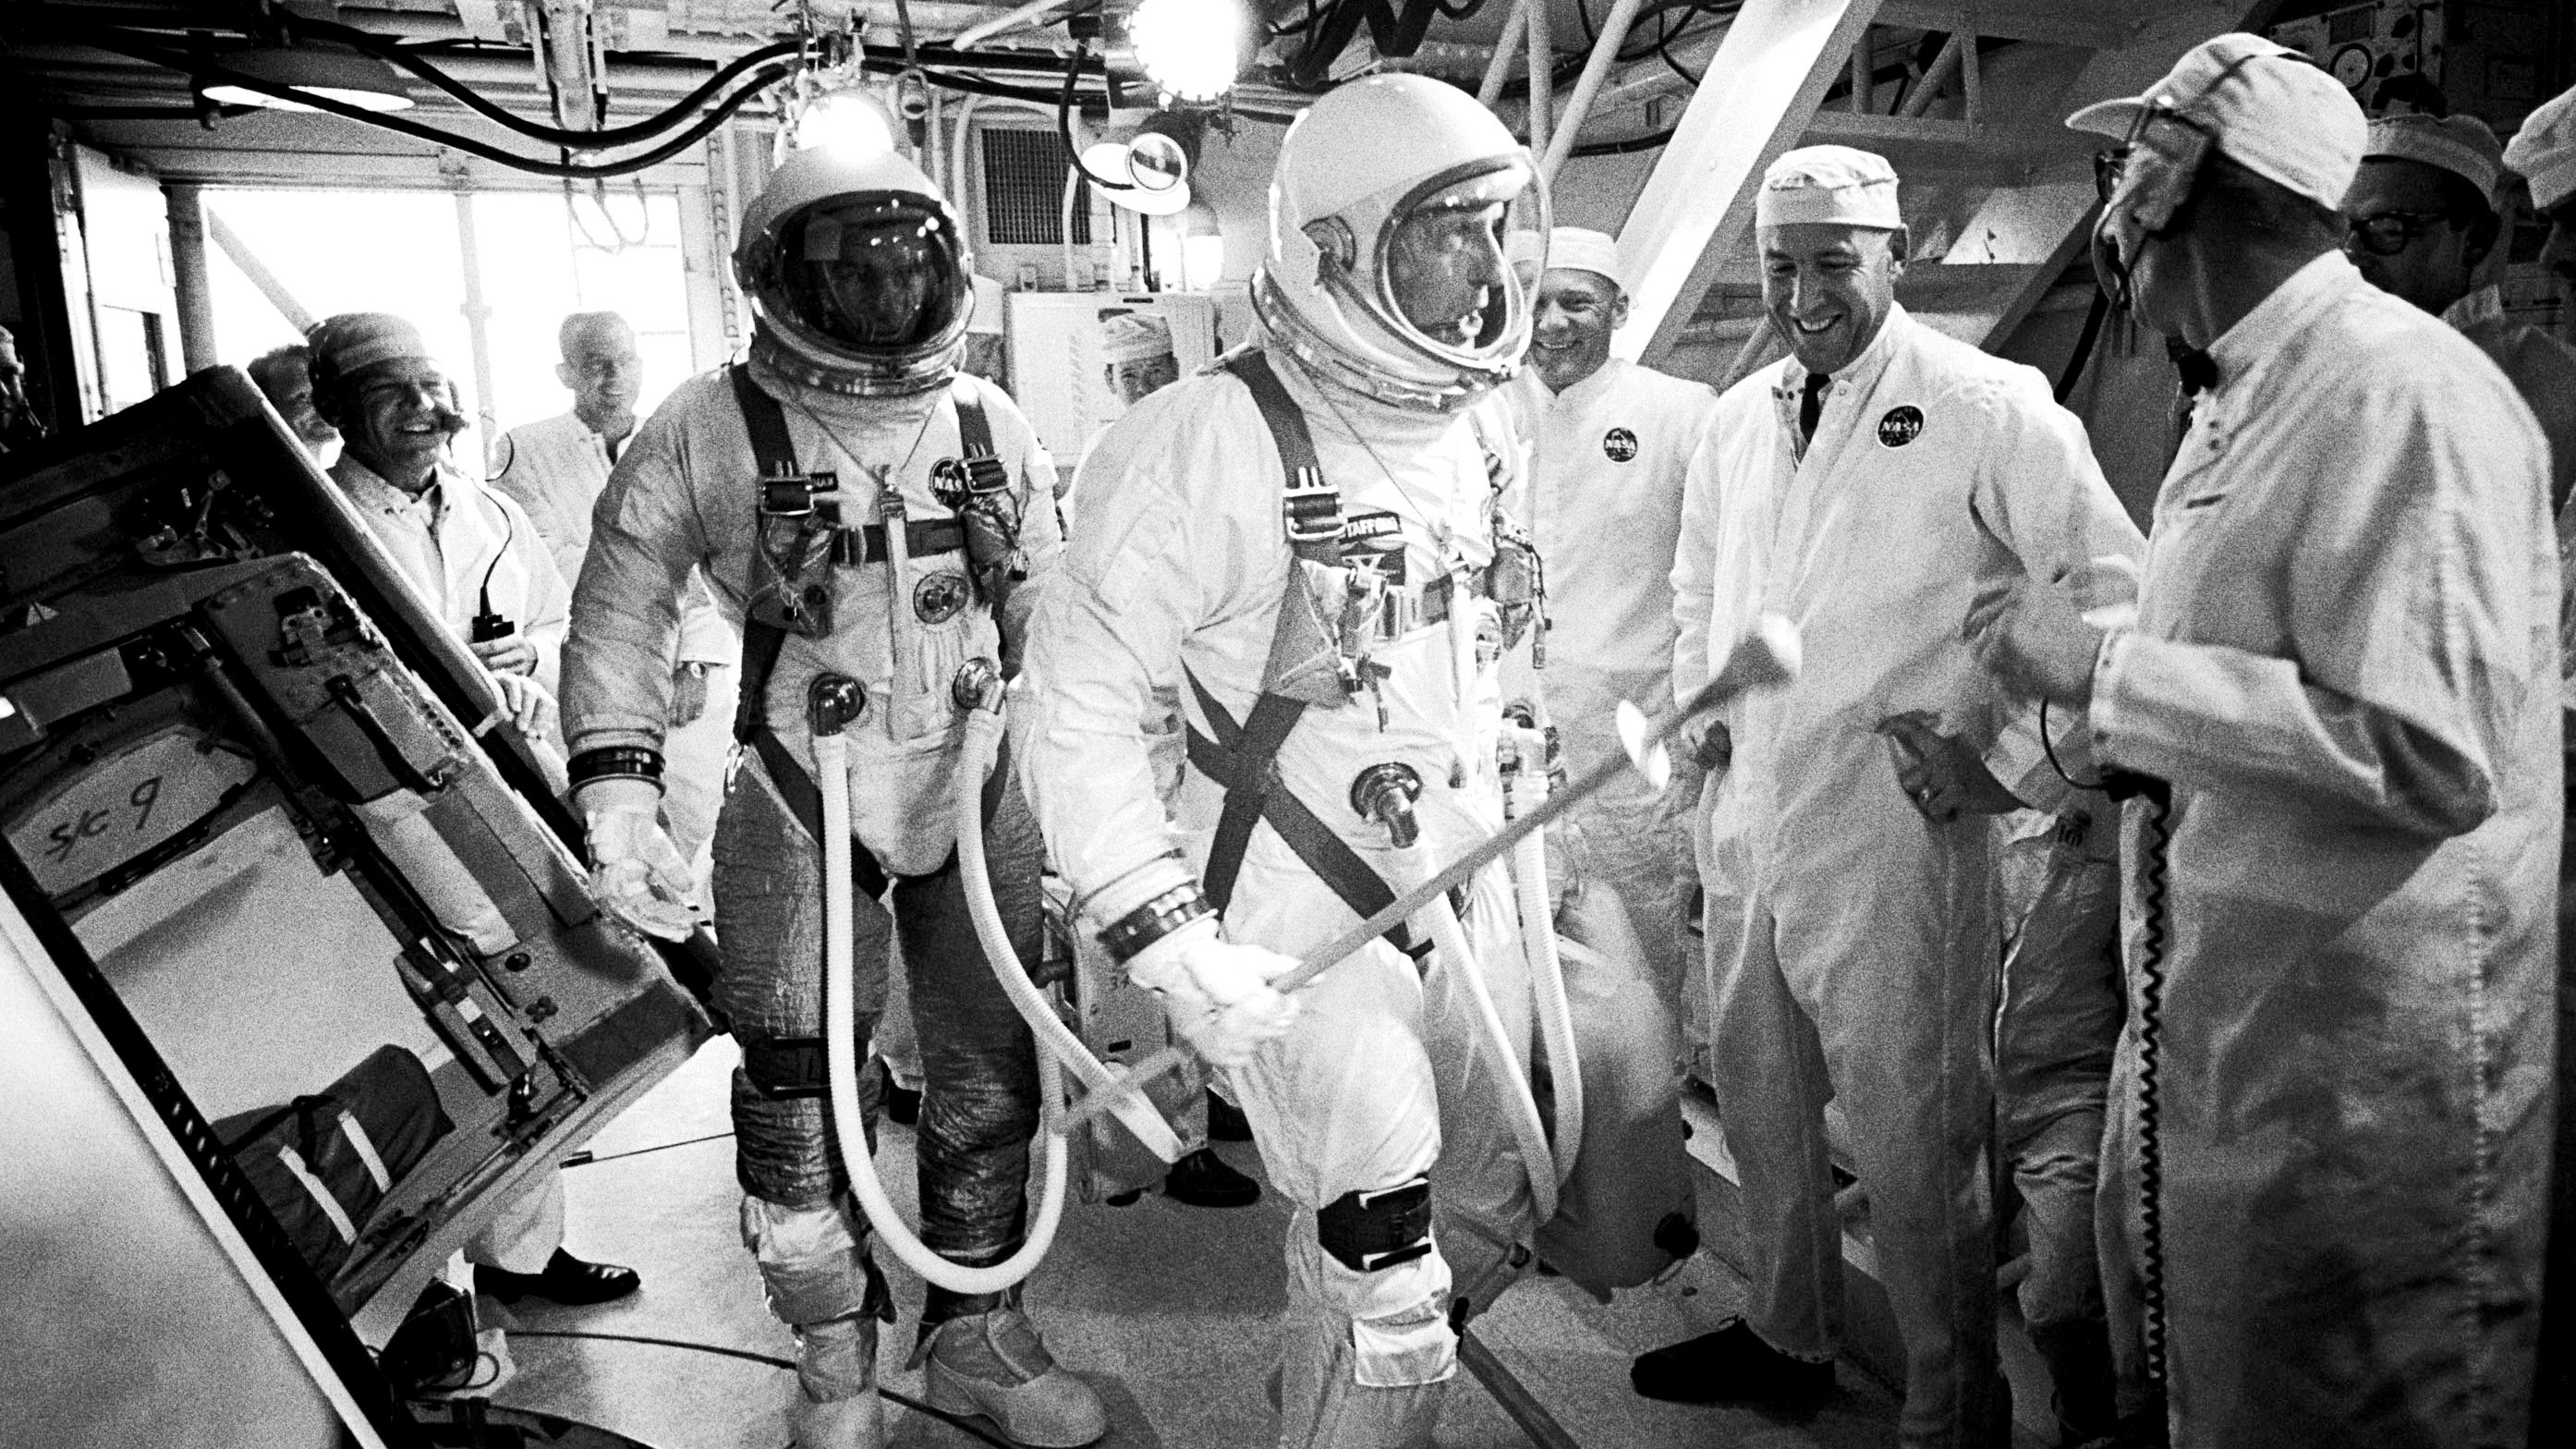 After two postponements, Gemini IXA astronauts Eugene Cernan, left, and Tom Stafford, center, arrive in the white room atop Launch Pad 19 at Cape Kennedy Air Force Station on June 3, 1966. Stafford is presenting a large match to McDonnell Aircraft Corporation's pad leader Gunter Wendt, far right. Photo courtesy of NASA.